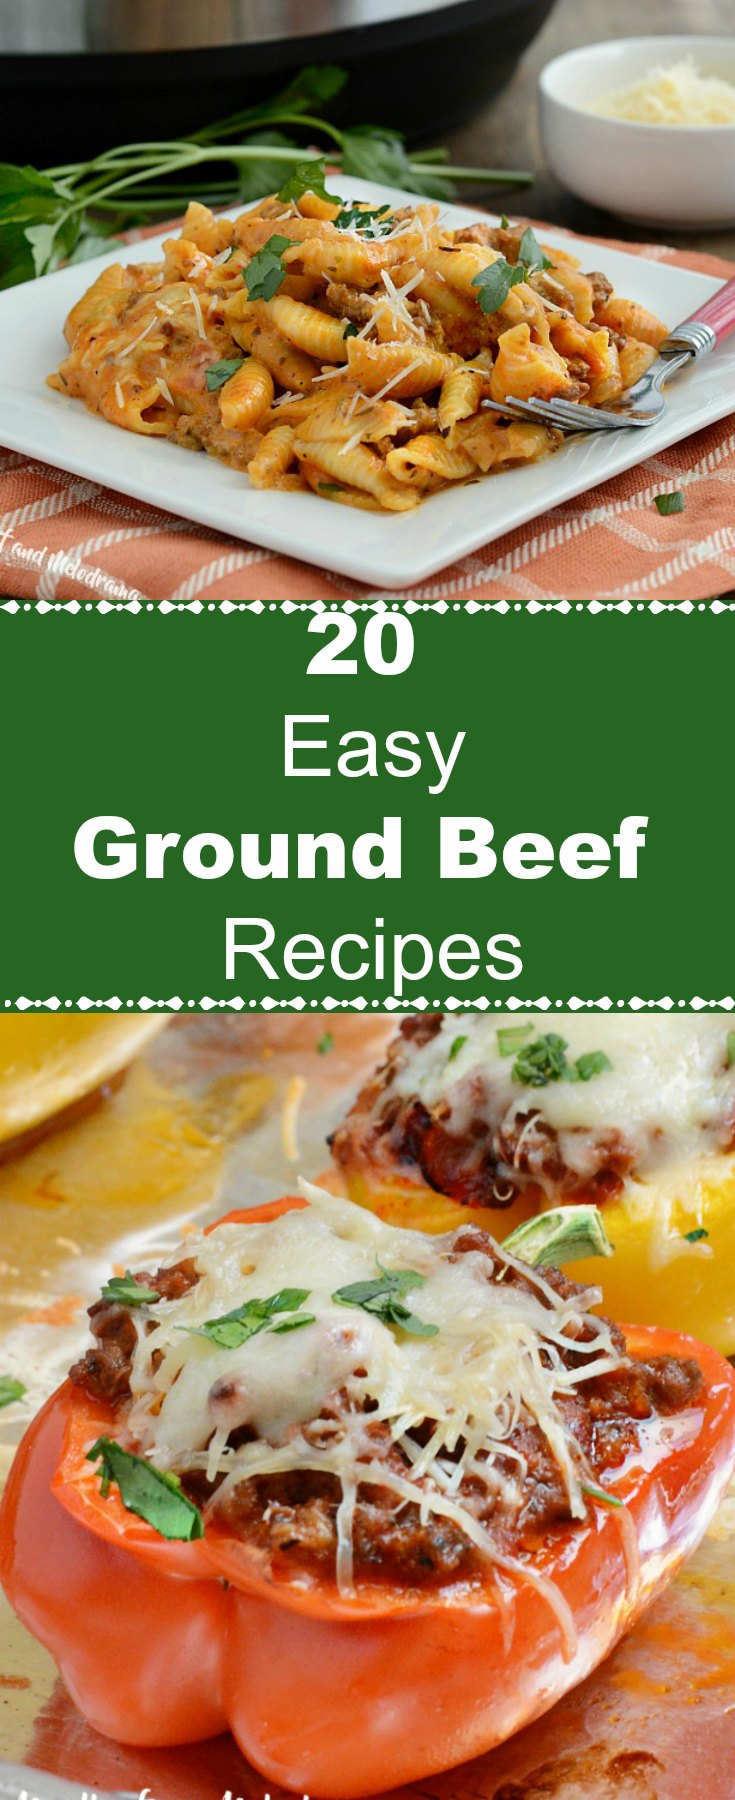 20 Simple Nail Designs For Beginners: 20 Easy Ground Beef Recipes